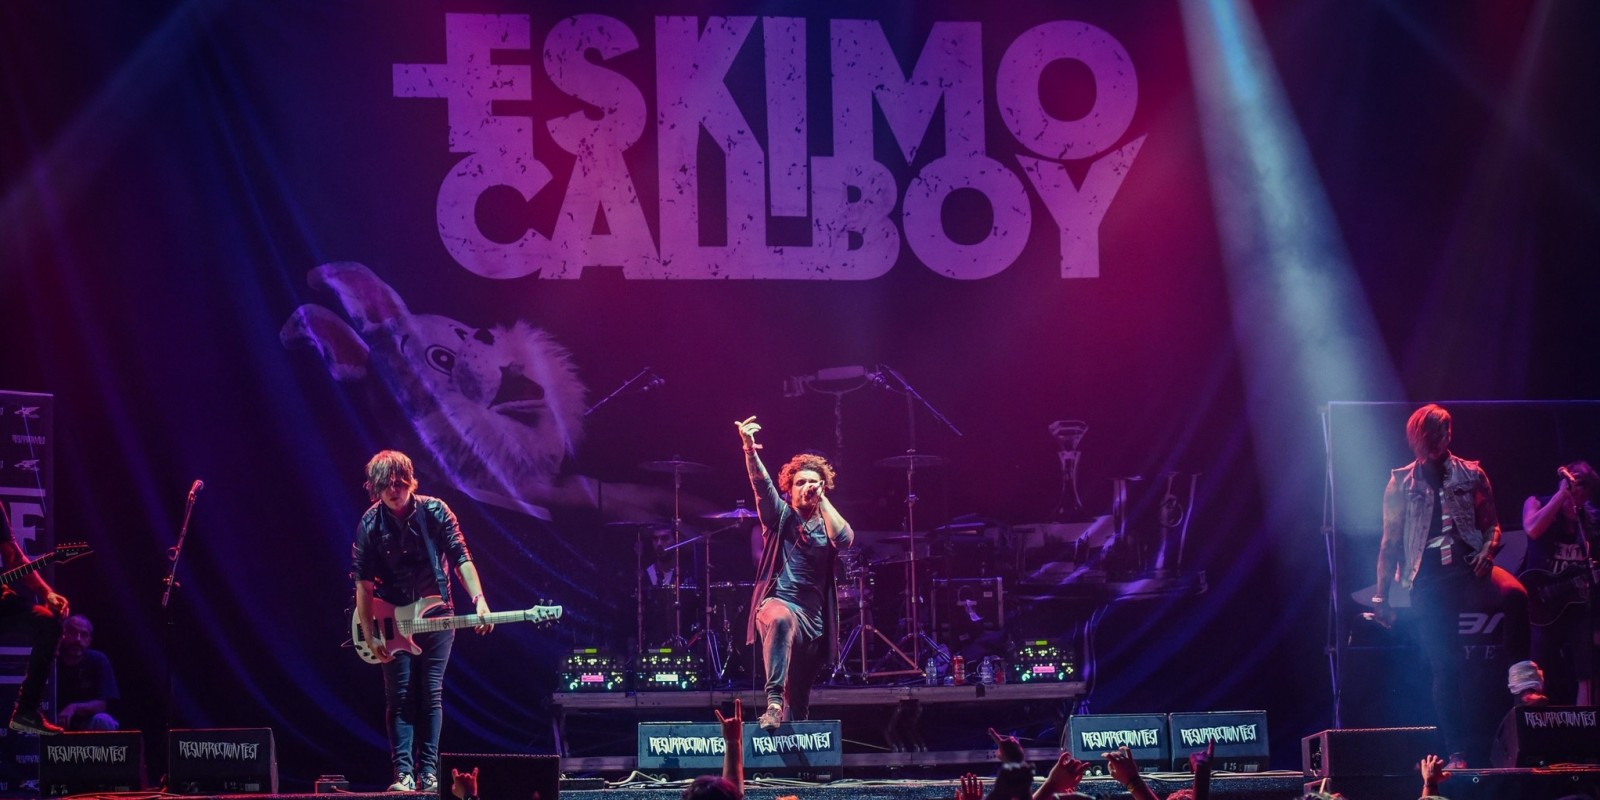 Eskimo Callboy at the opening night of Resurrection Fest in Spain